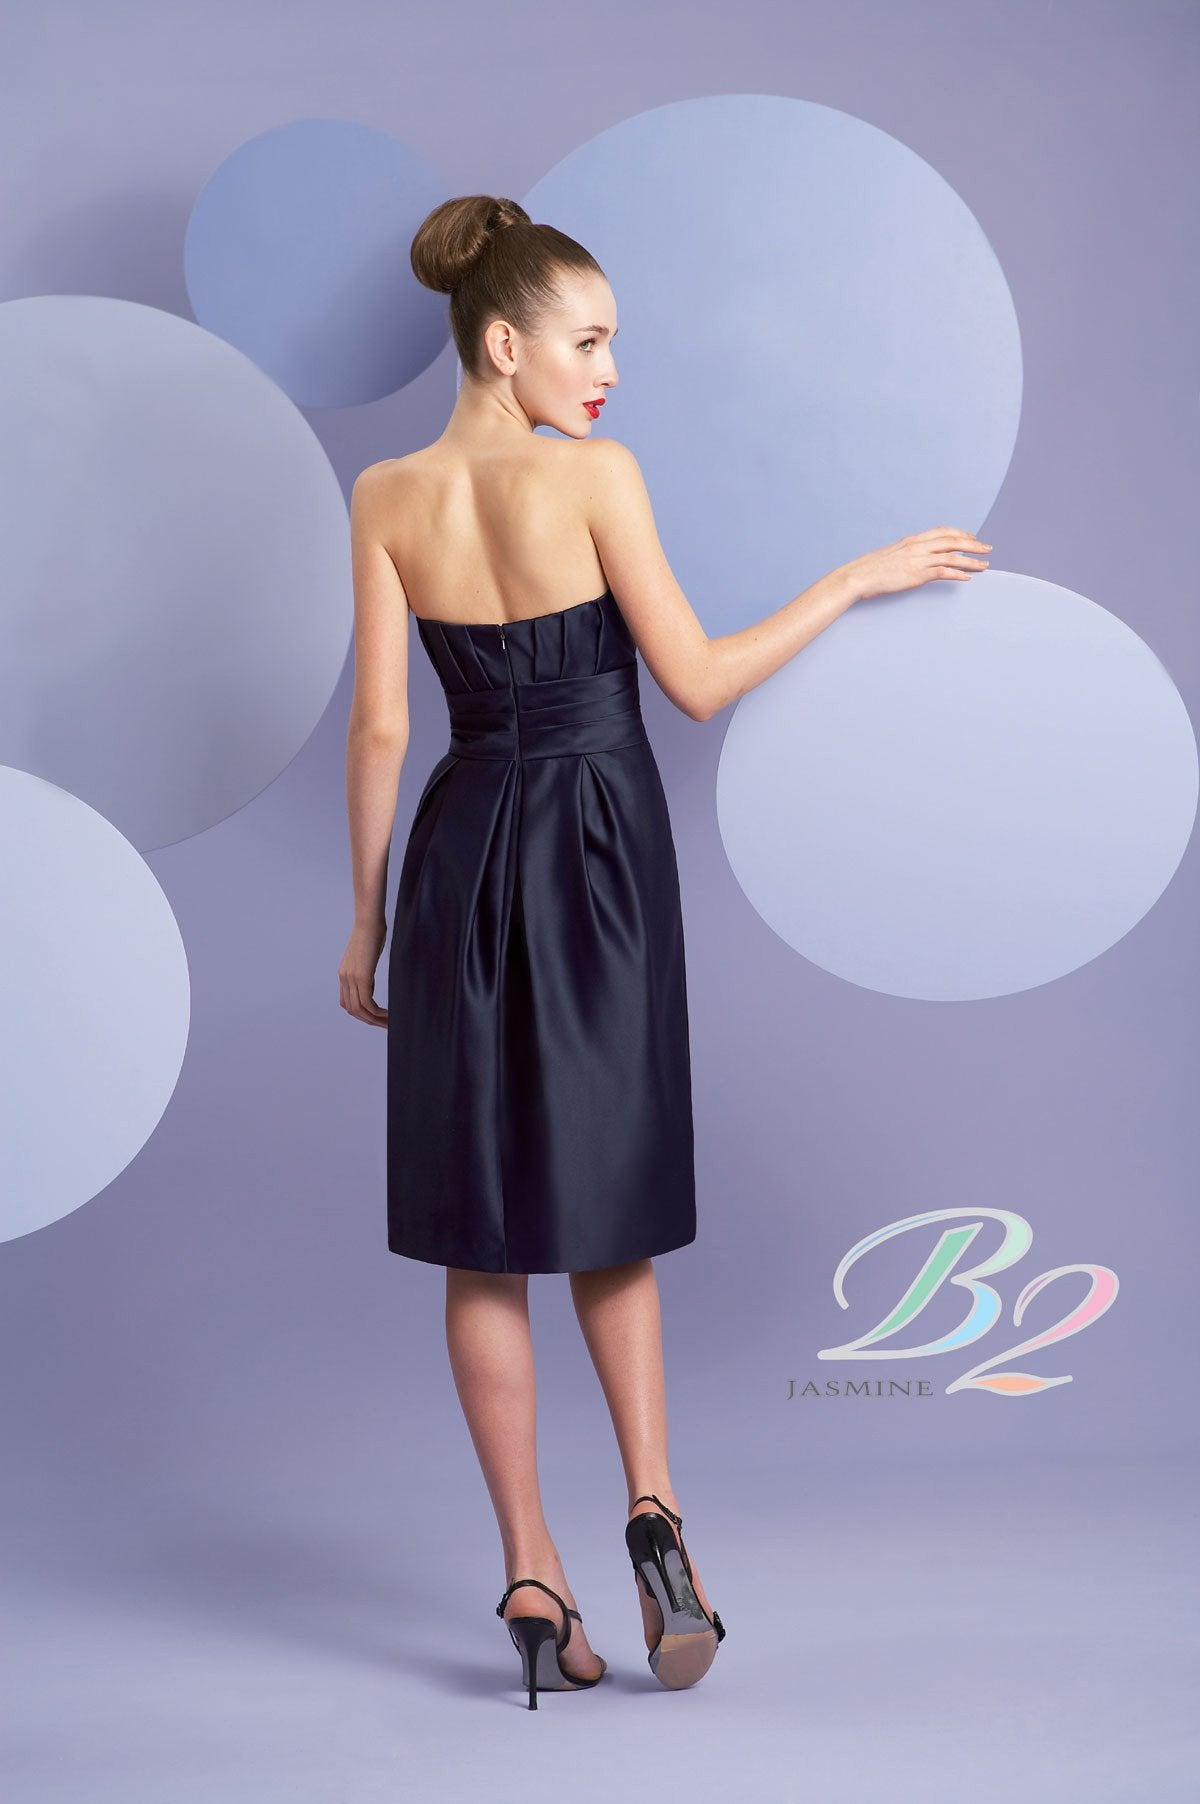 Jasmine B2 B3098 Cayman Blue size 8 In Stock Bridesmaid Dress - Tom's Bridal